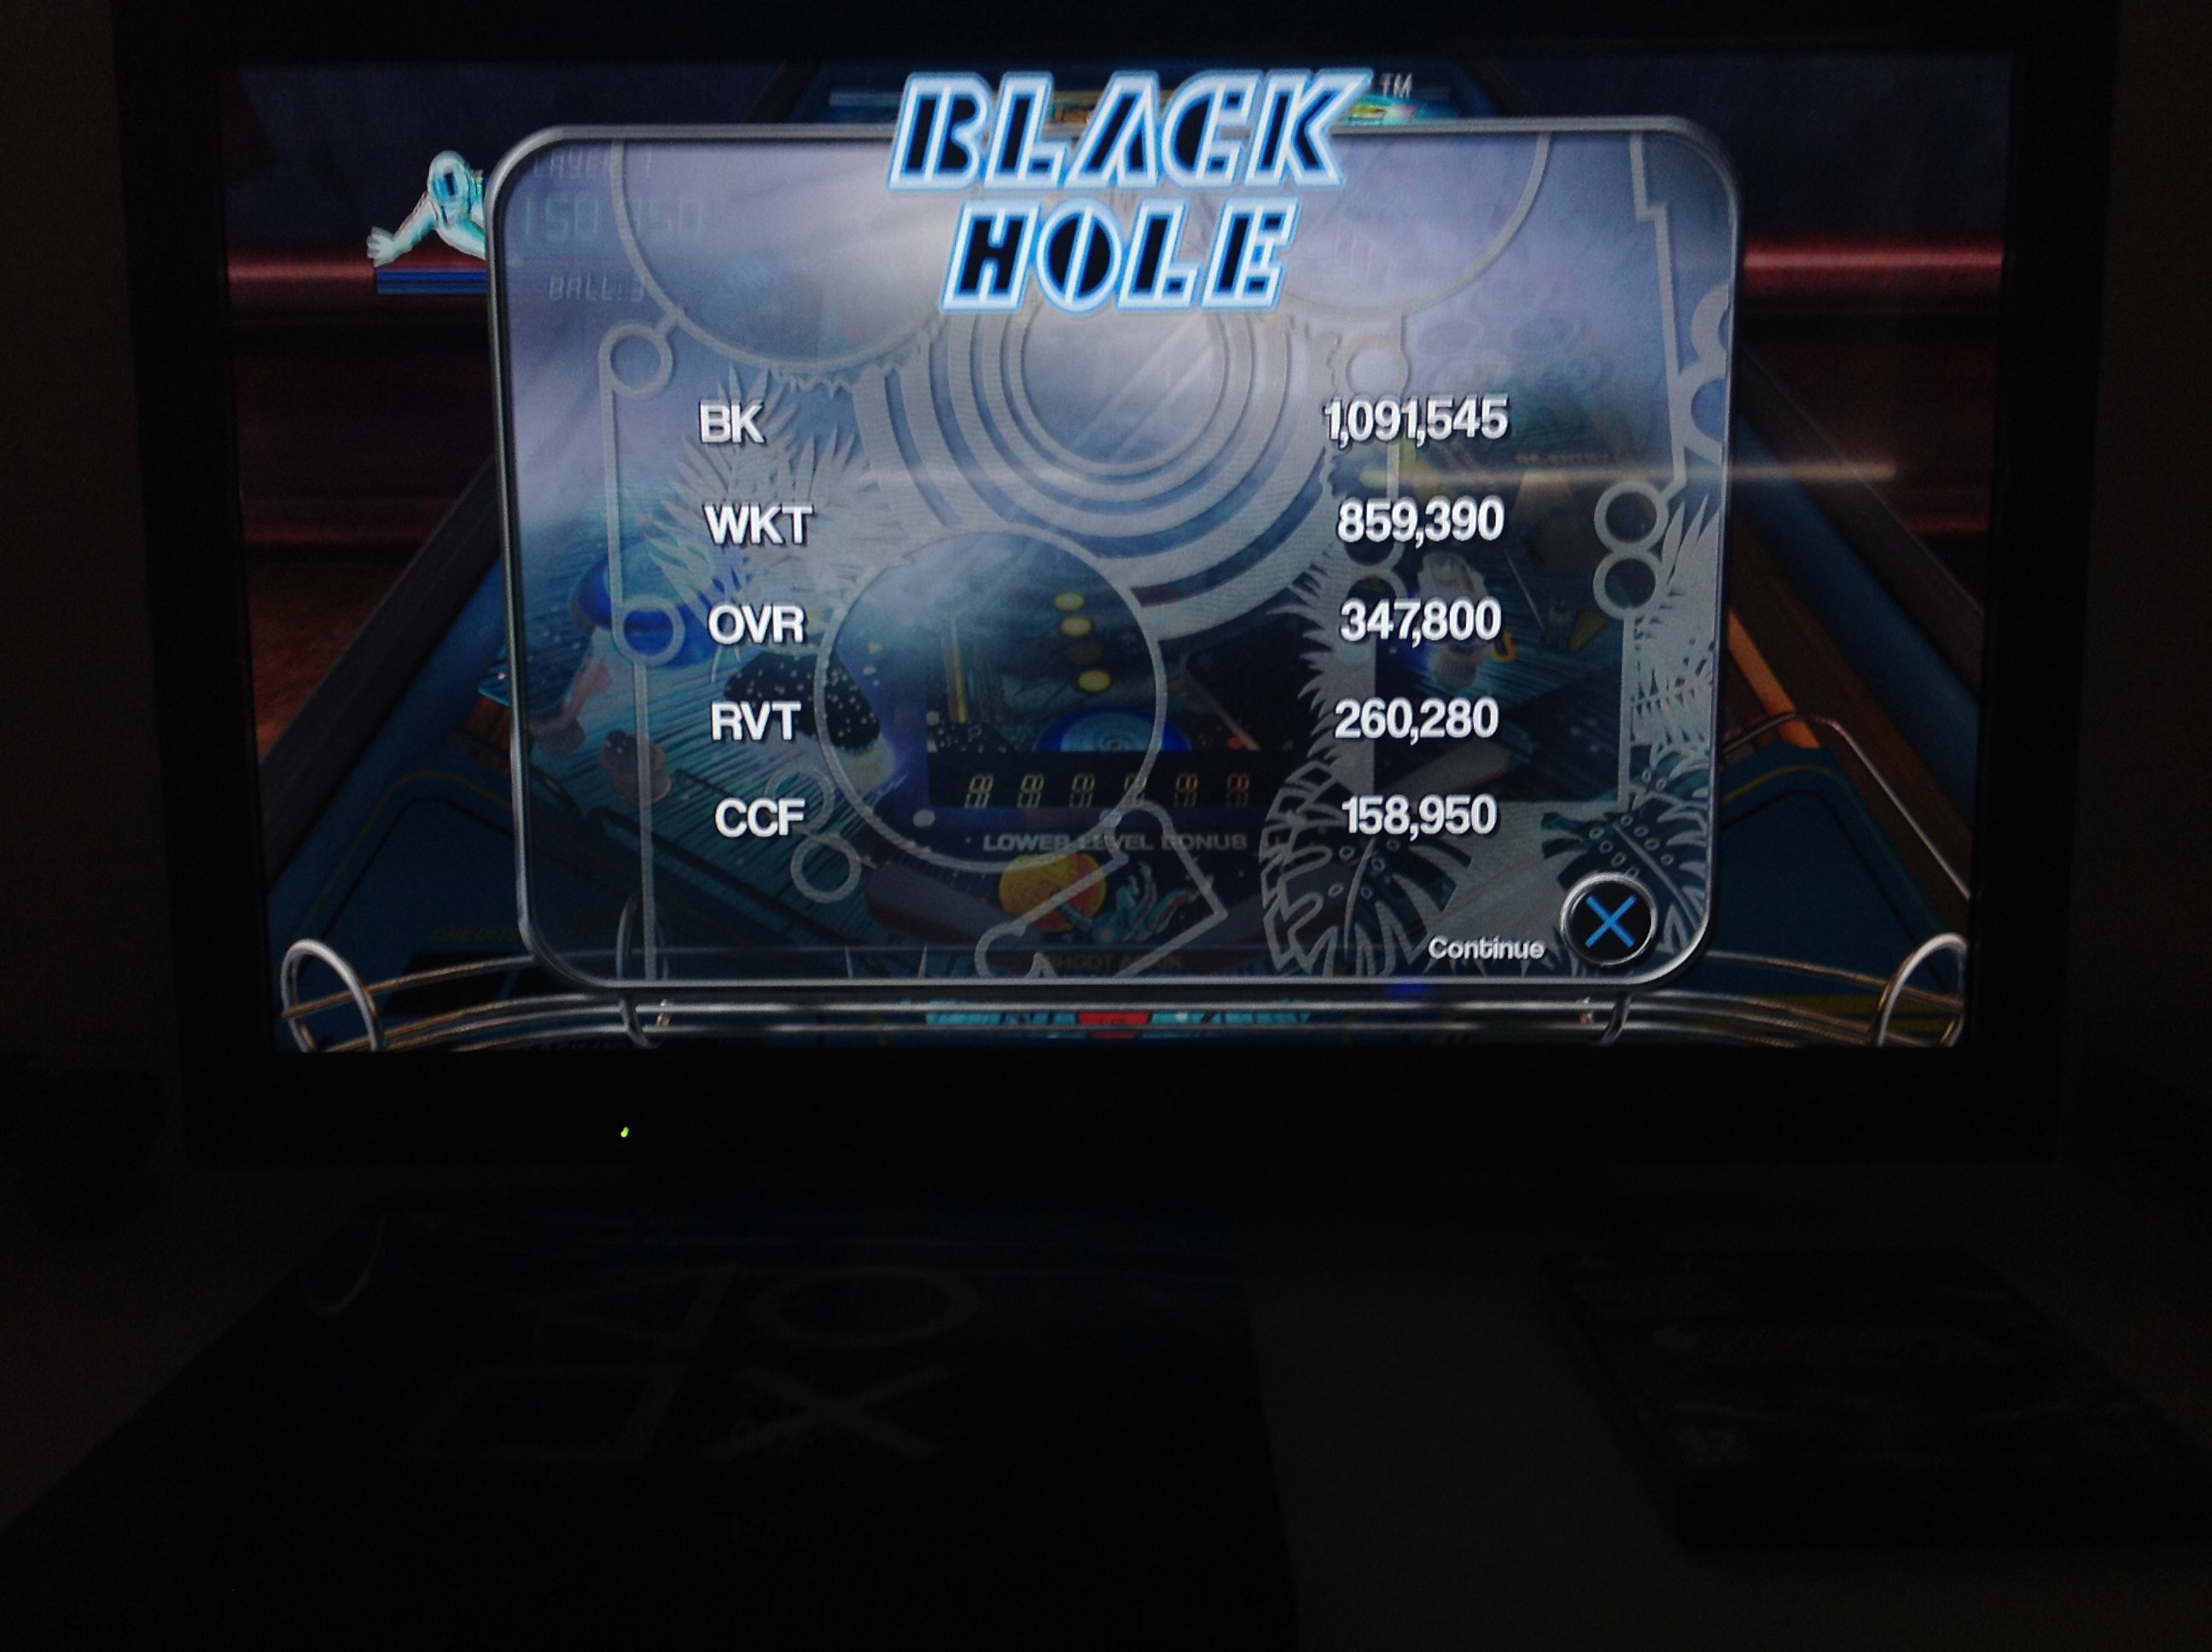 CoCoForest: Pinball Arcade: Black Hole (Playstation 4) 158,950 points on 2018-07-05 13:42:53